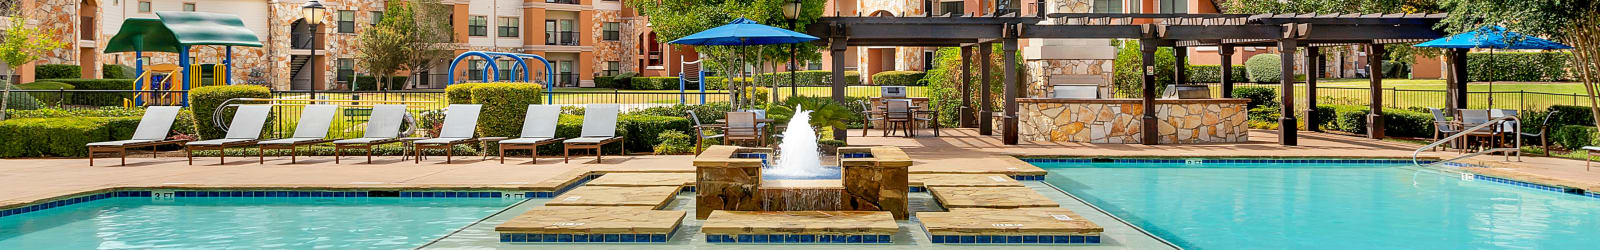 Pet friendly at Onion Creek Luxury Apartments in Austin, Texas